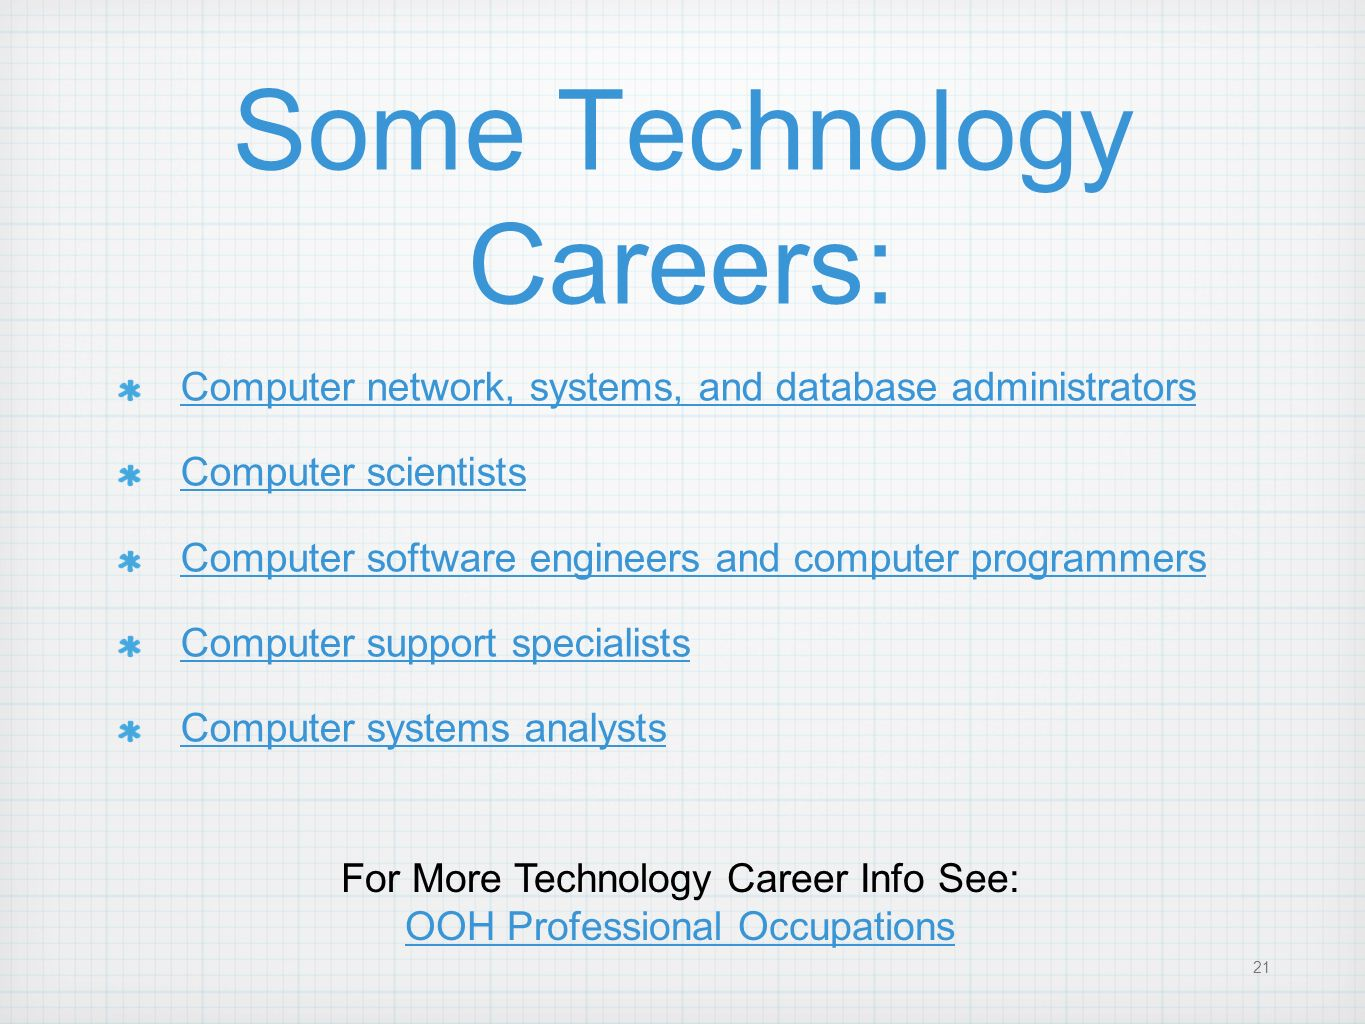 Some Technology Careers: